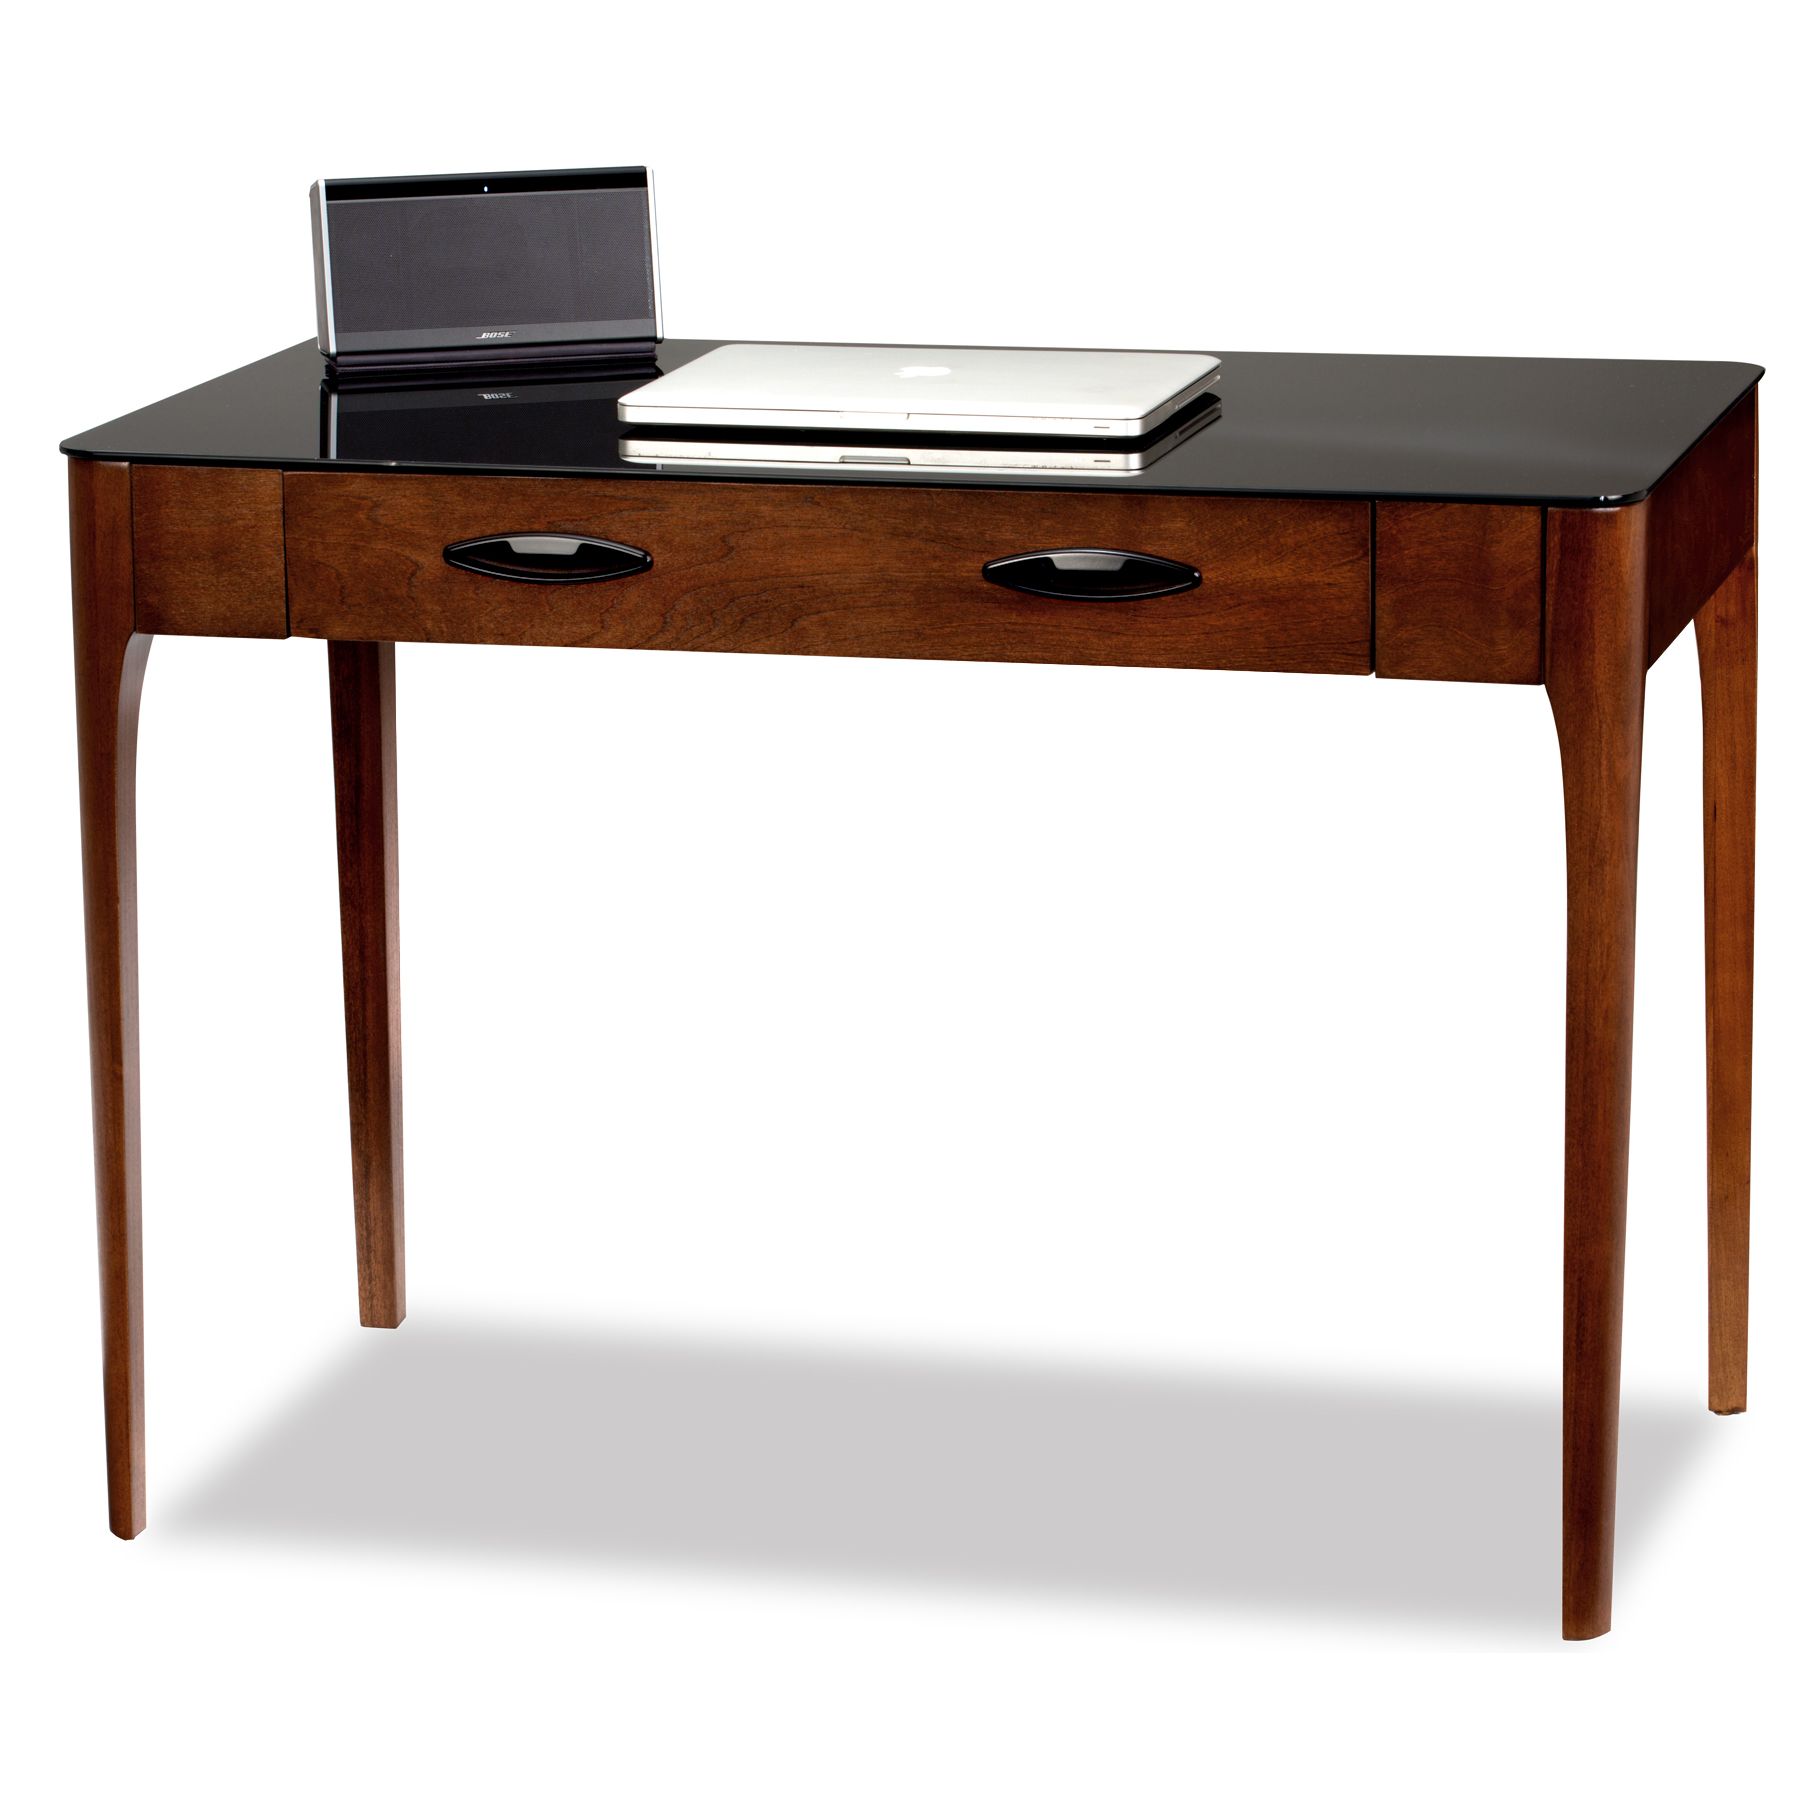 Image of Leick 11111 Obsidian Writing Desk, Brown